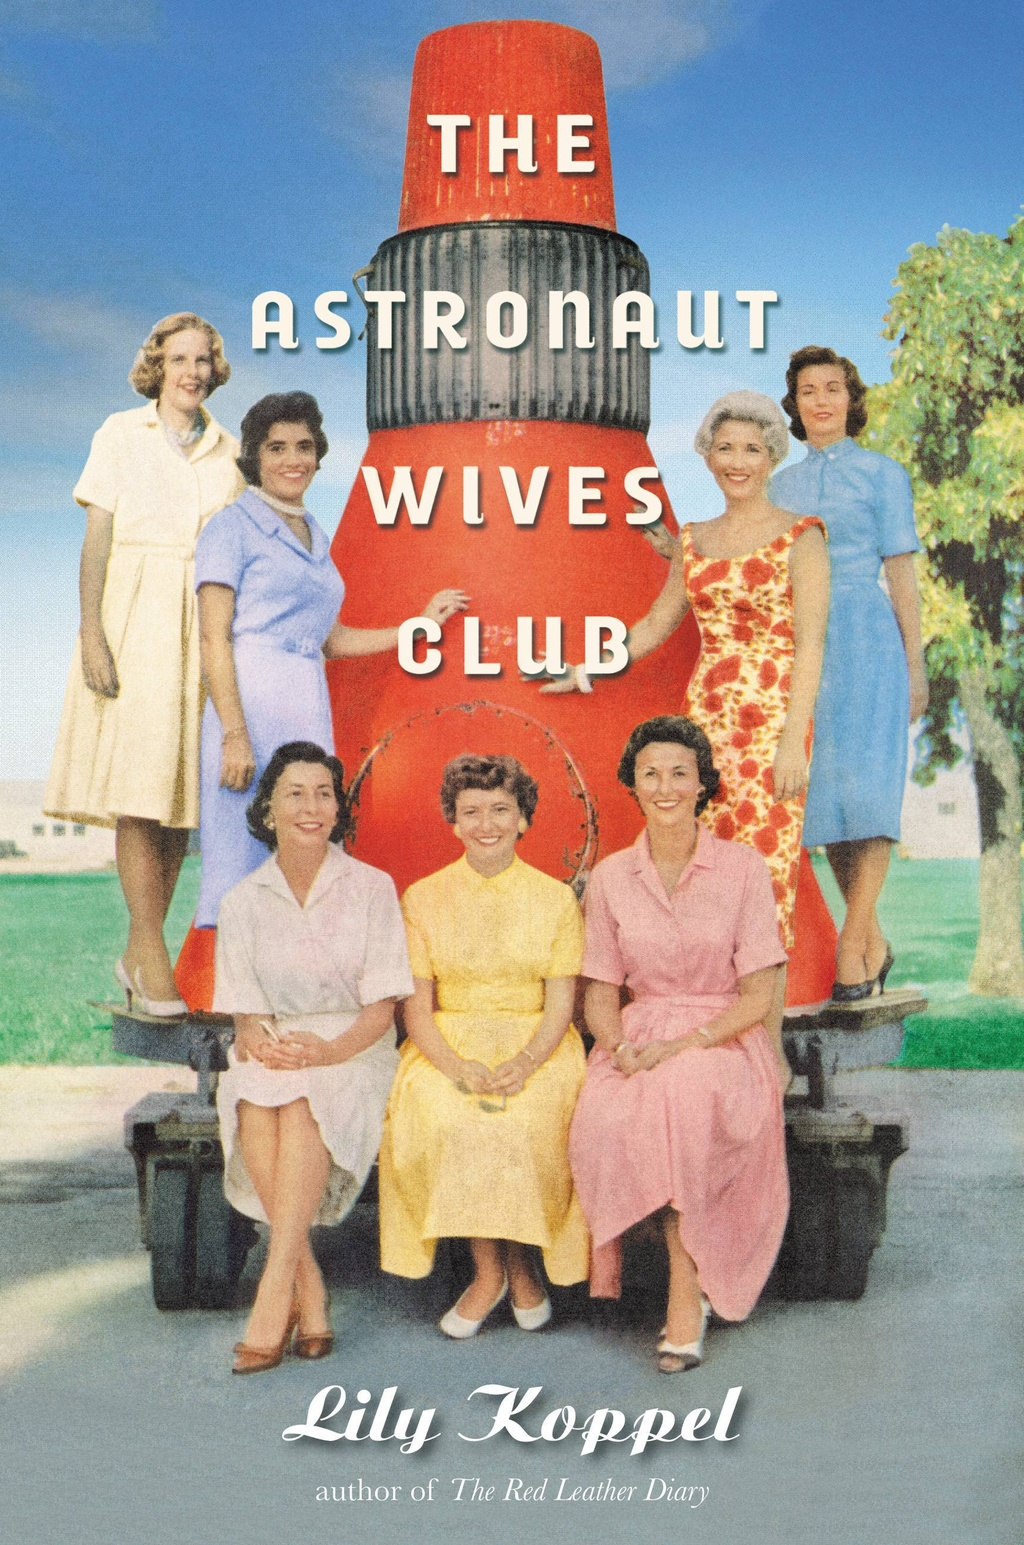 Secrets of Astronaut Wives: Q&A With Author Lily Koppel